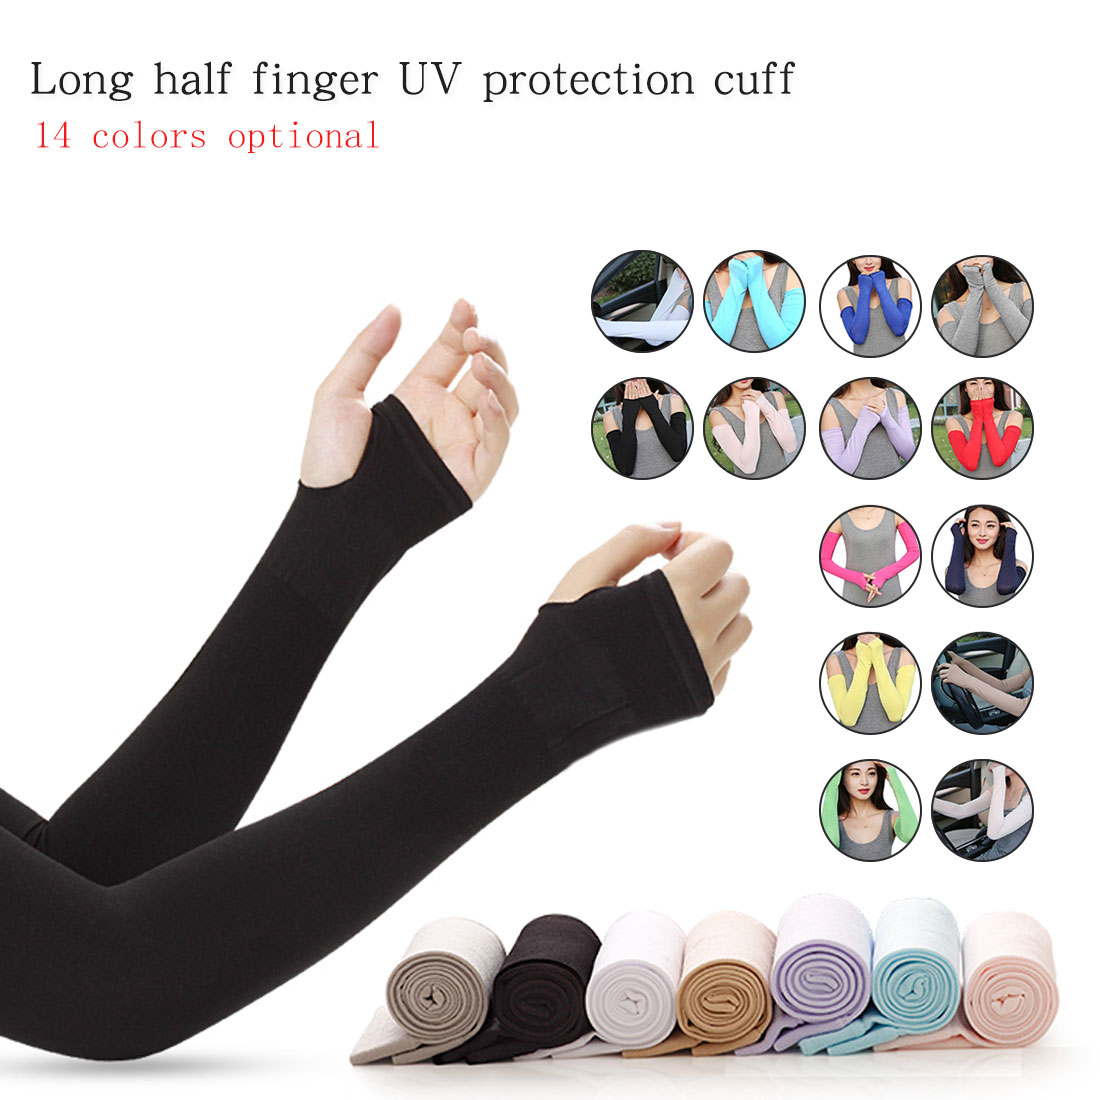 New Protector Cover Arm Sleeves Ice Silk Sunscreen Sleeves Outdoor Arm Warmer Half Finger Sleeves Long Gloves Sun UV Protection